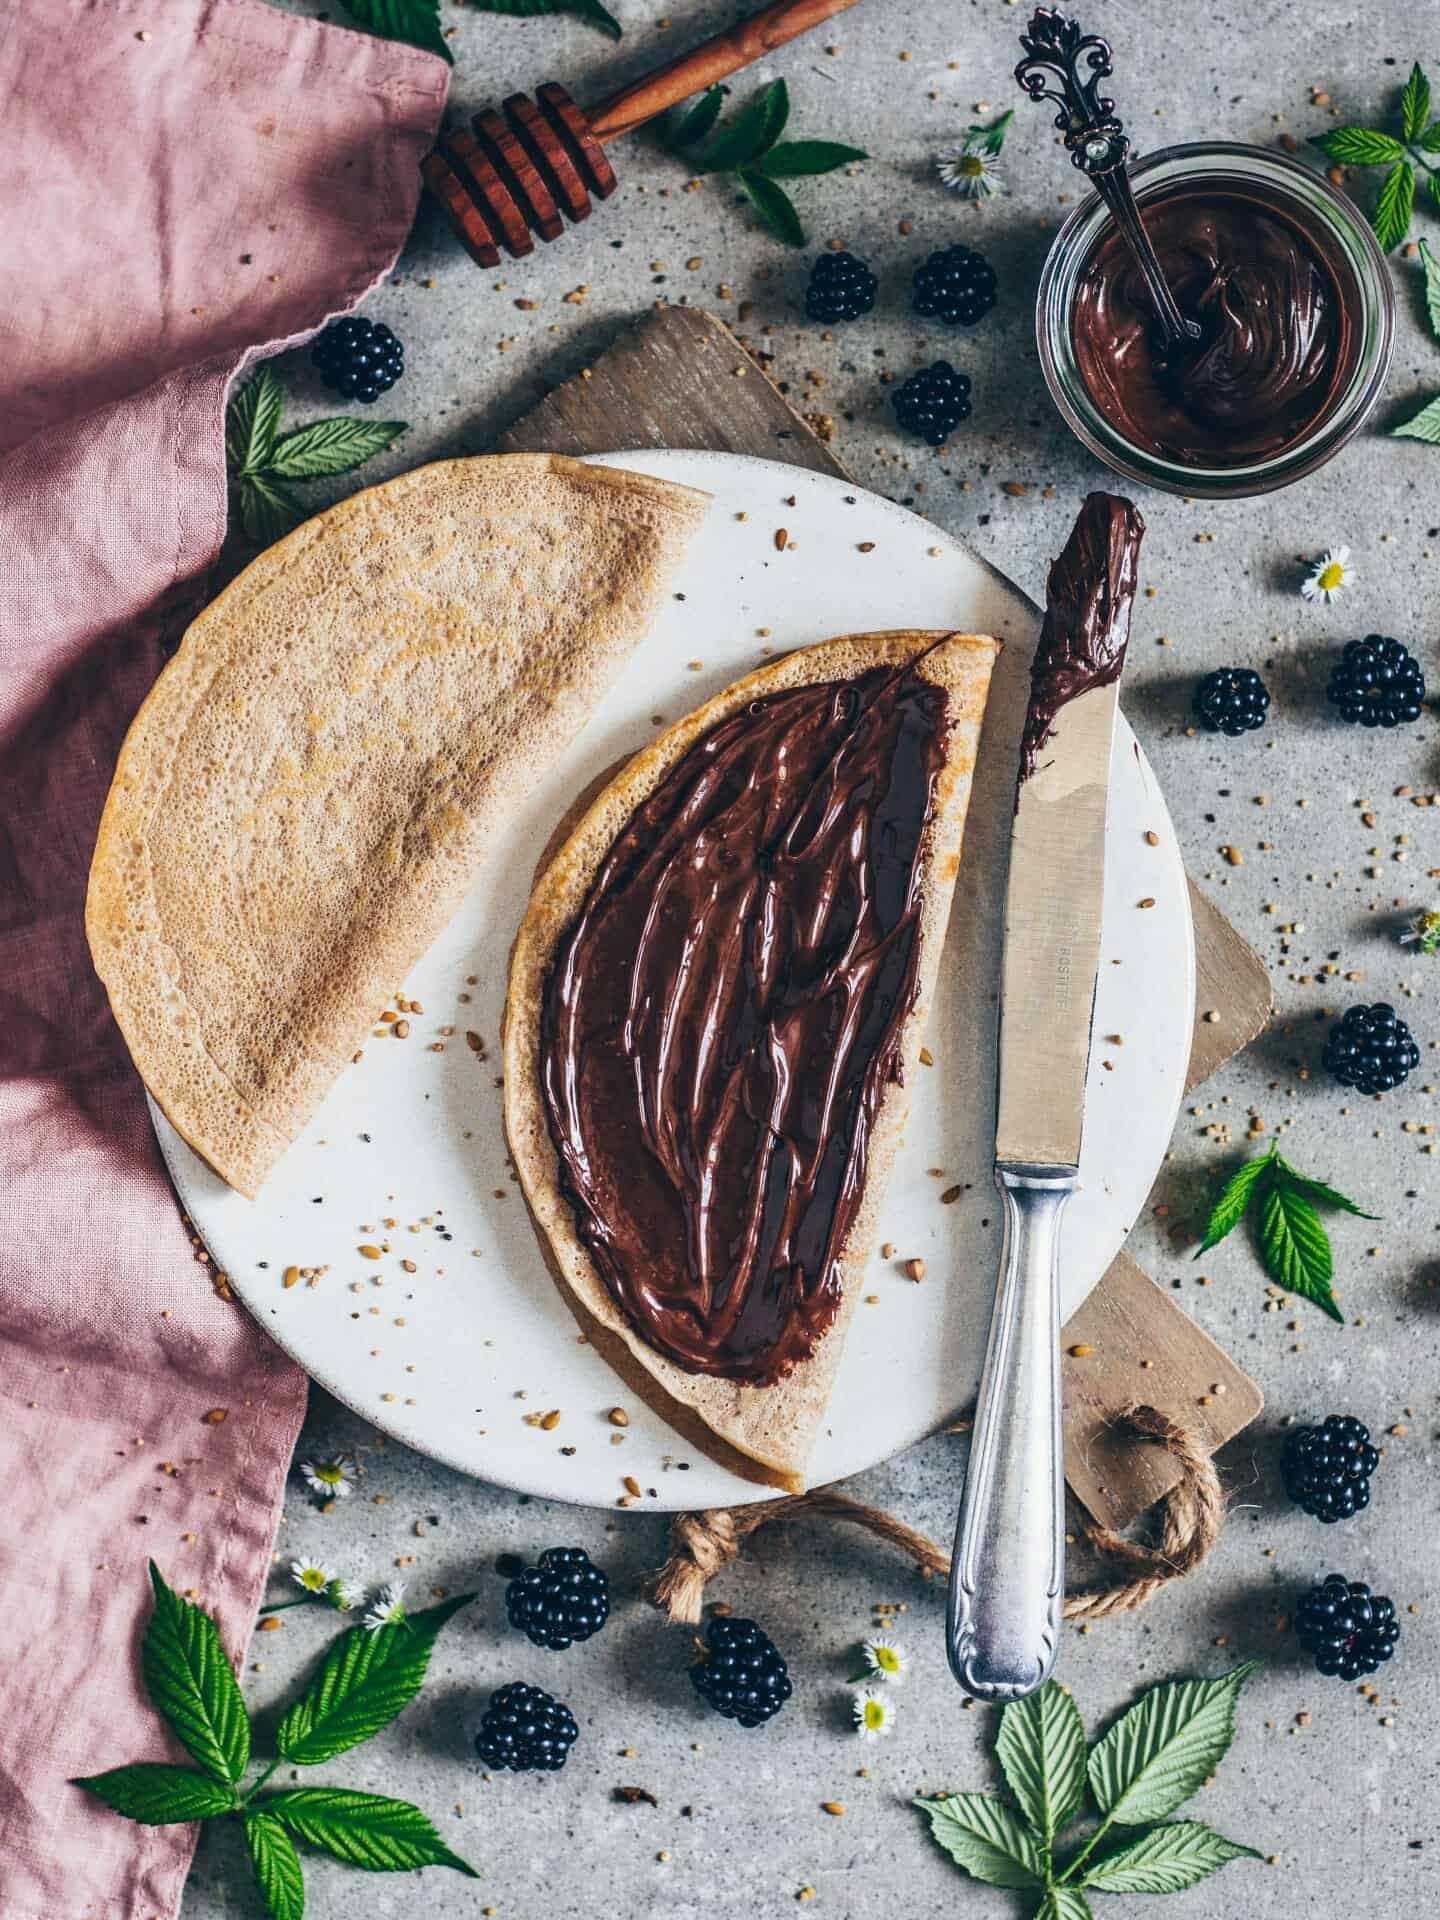 crêpes with chocolate cream